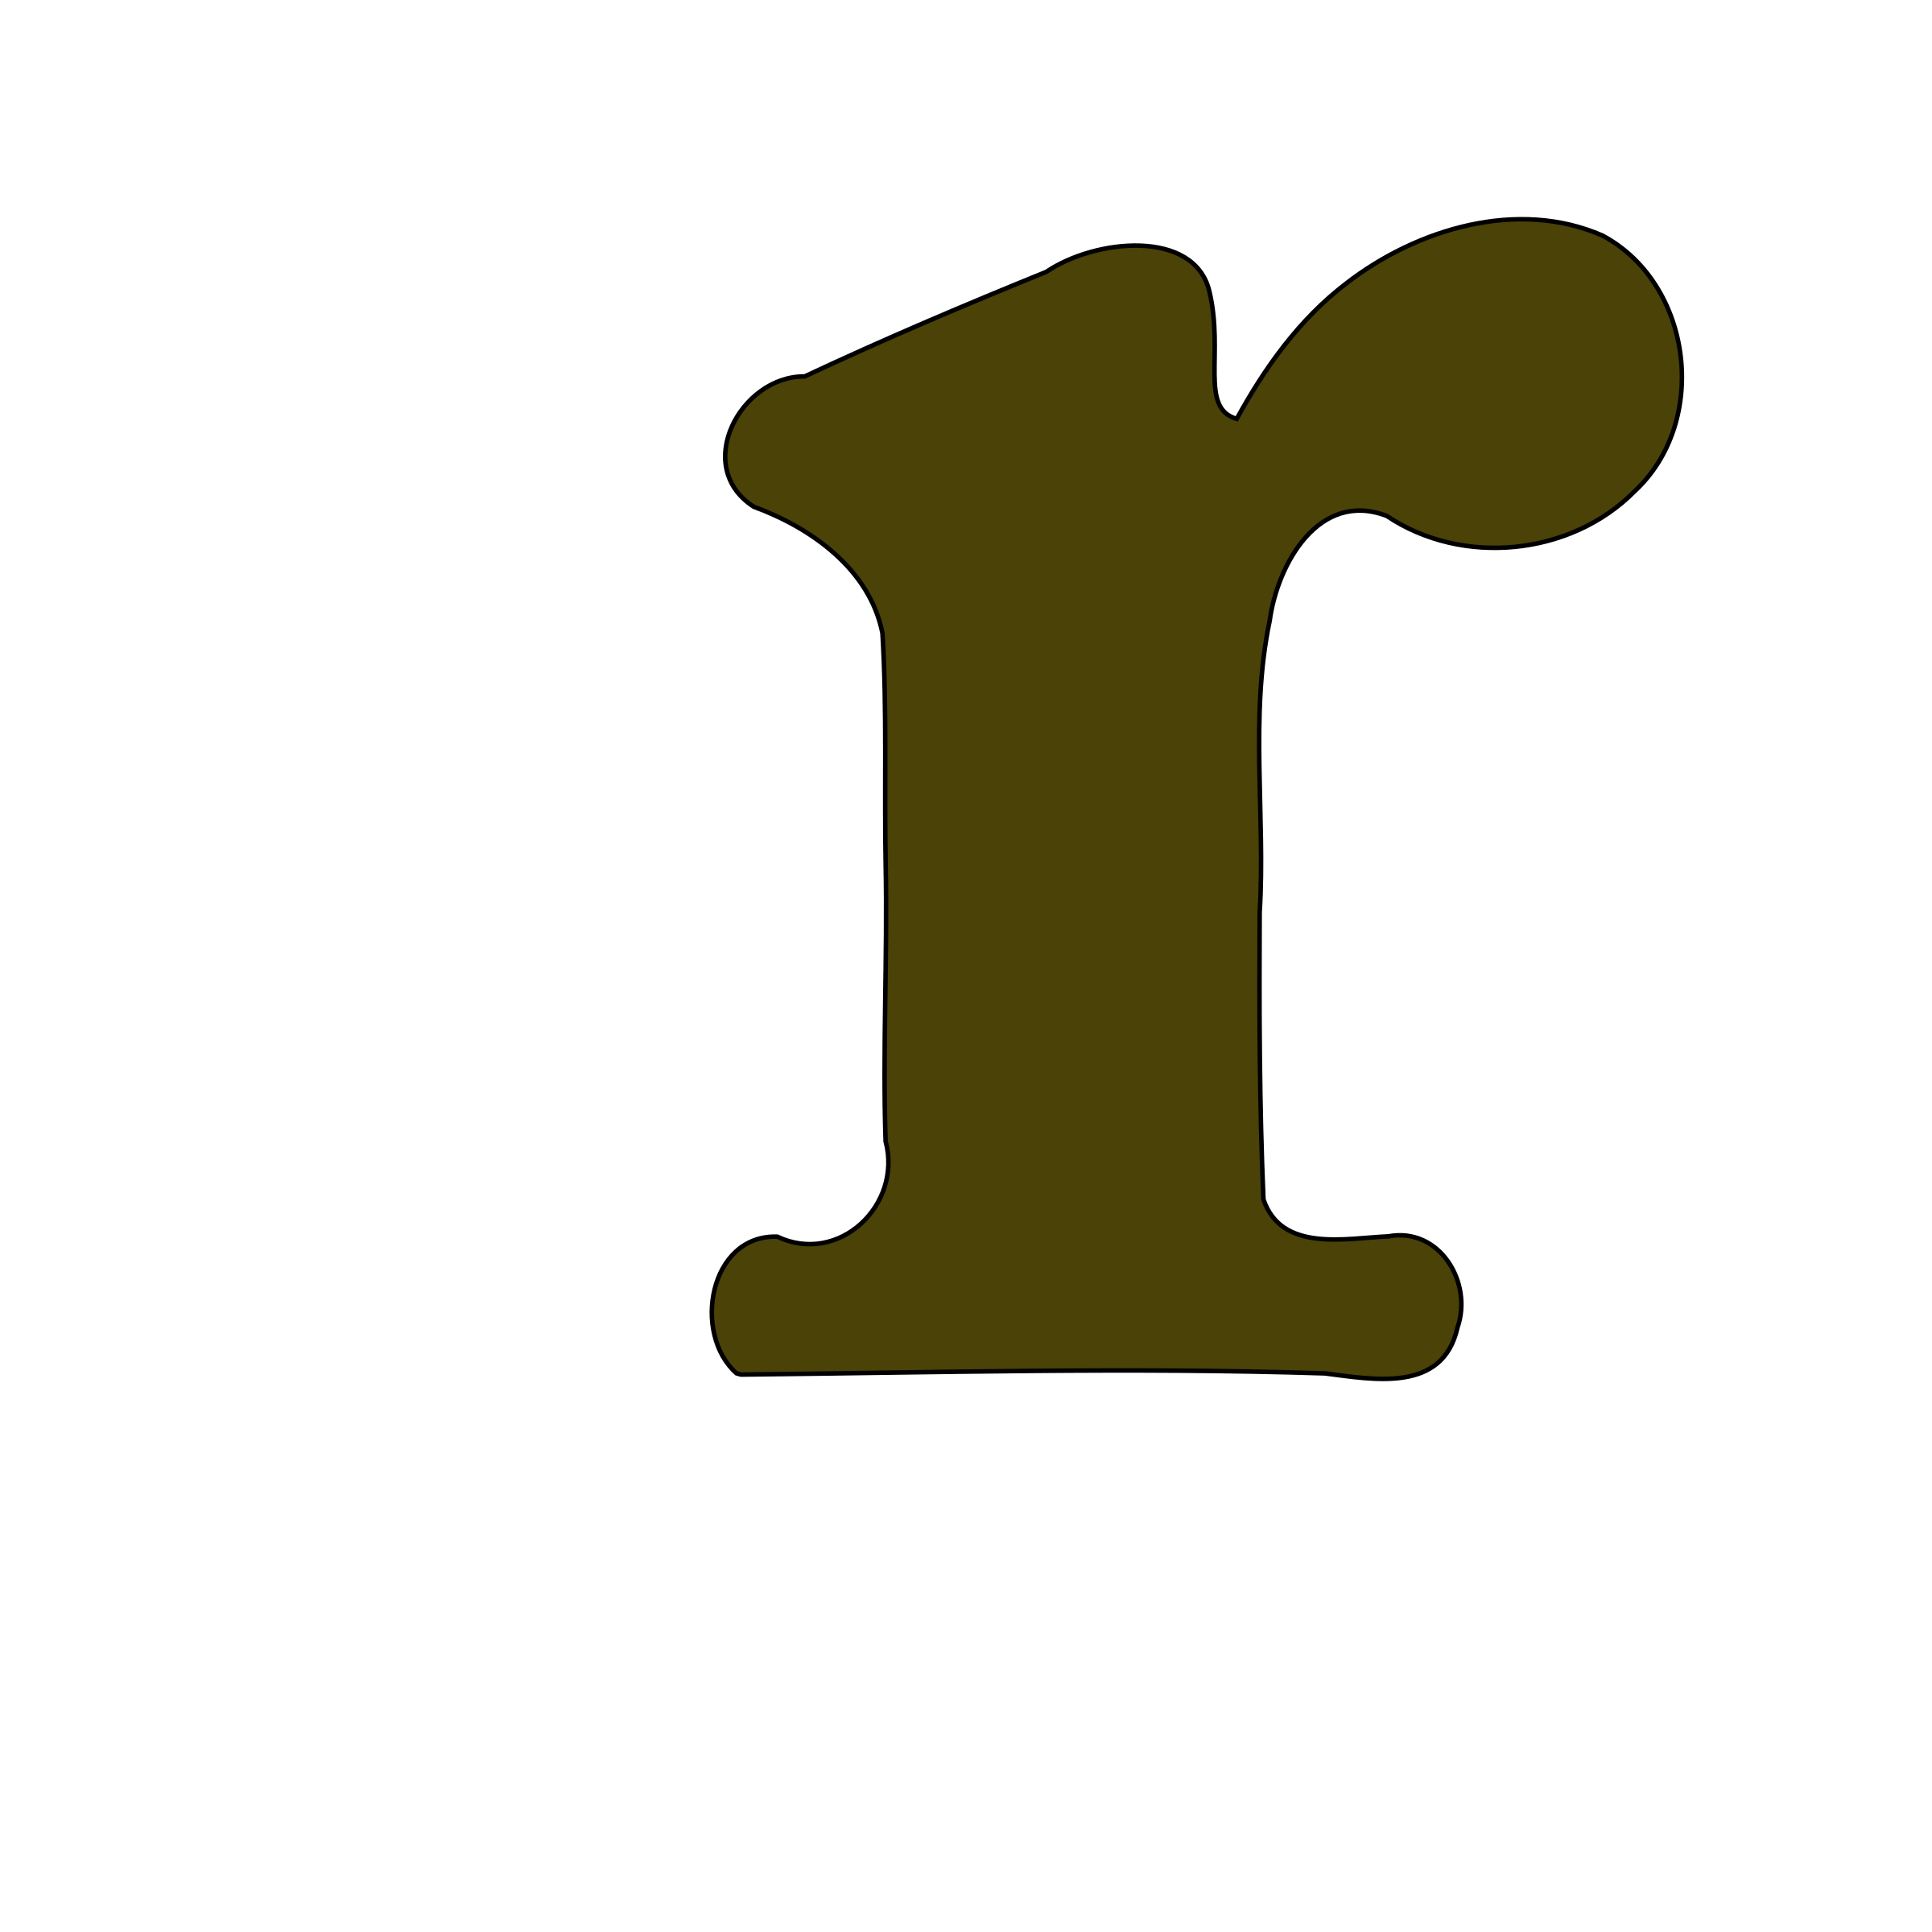 clipart lowercase r